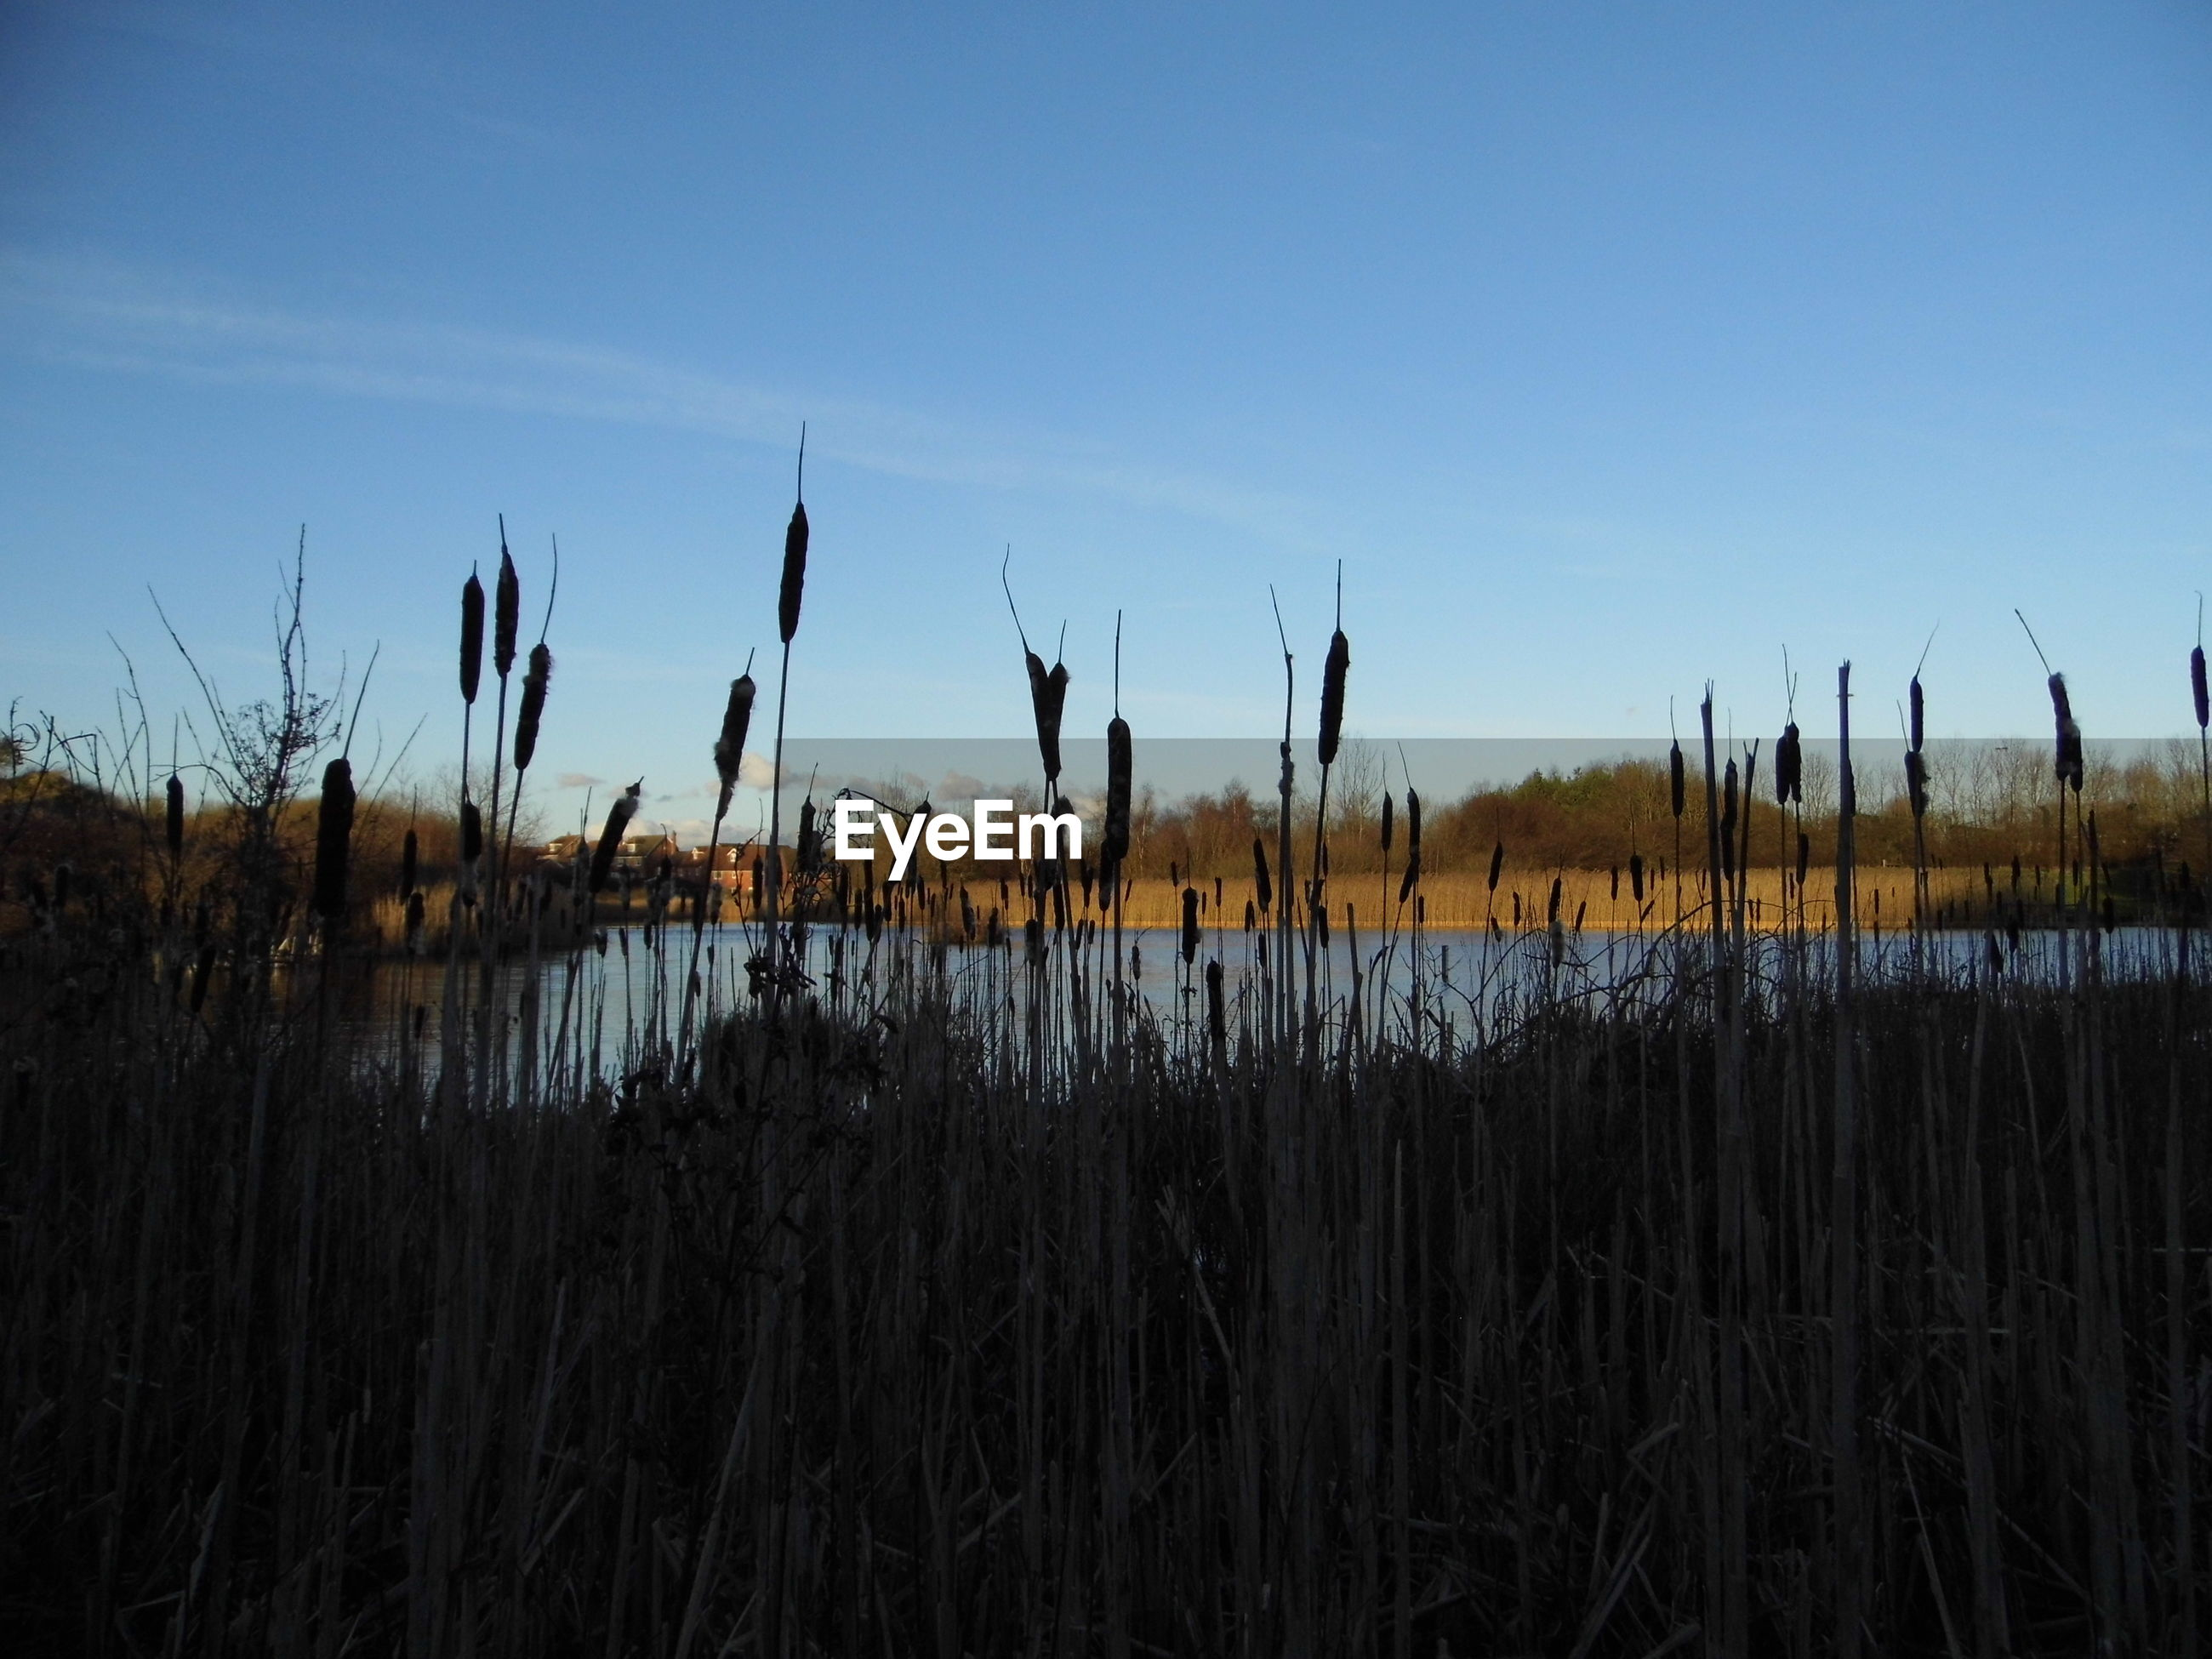 Cattails by lake against blue sky